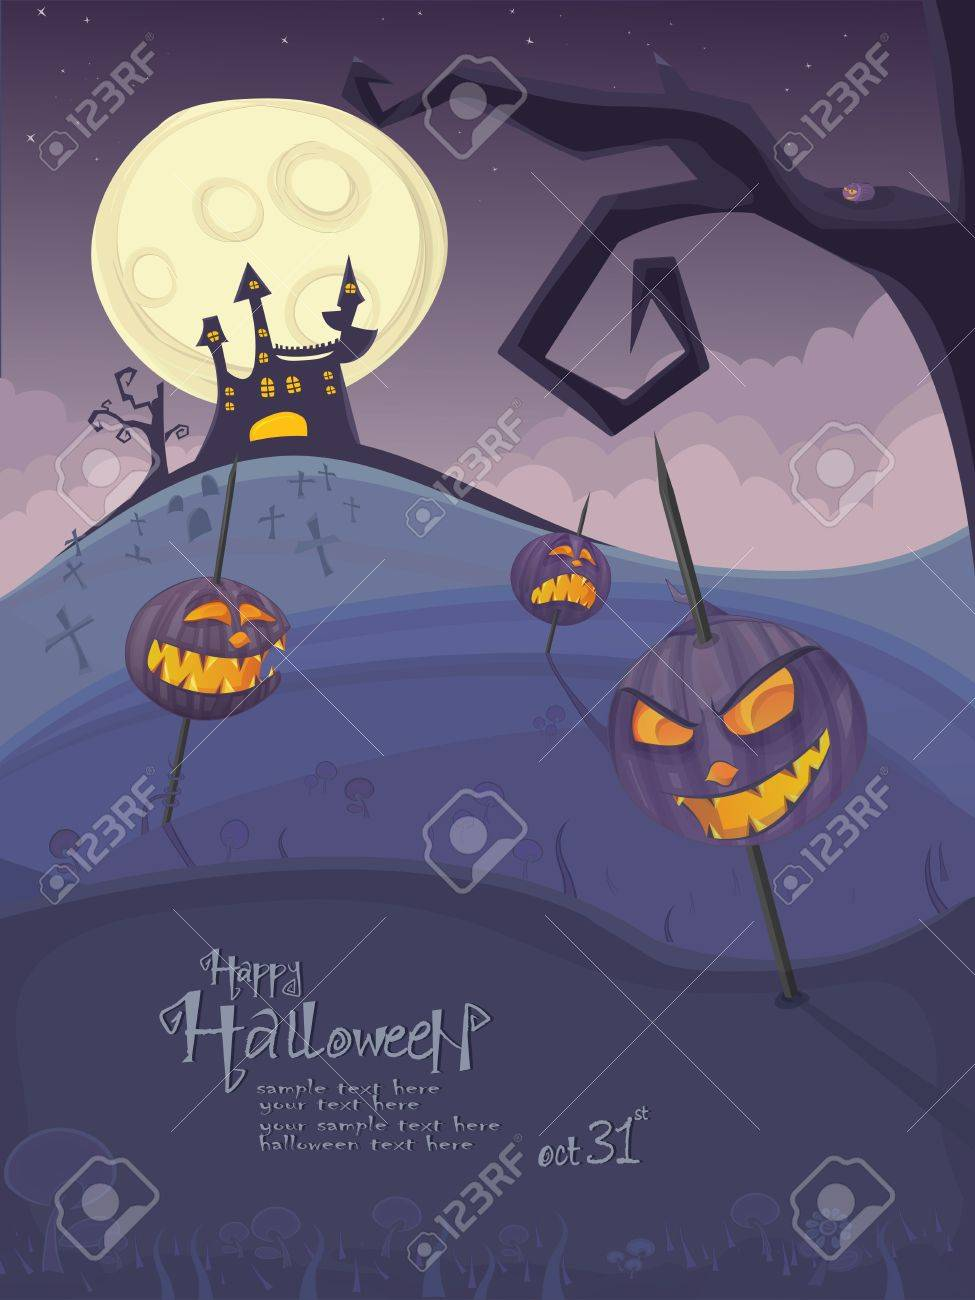 Halloween template with night landscape, evil pumpkins, spooky tree, graveyard and haunted house with glowing moon and clouds in the back. Stock Vector - 10906927